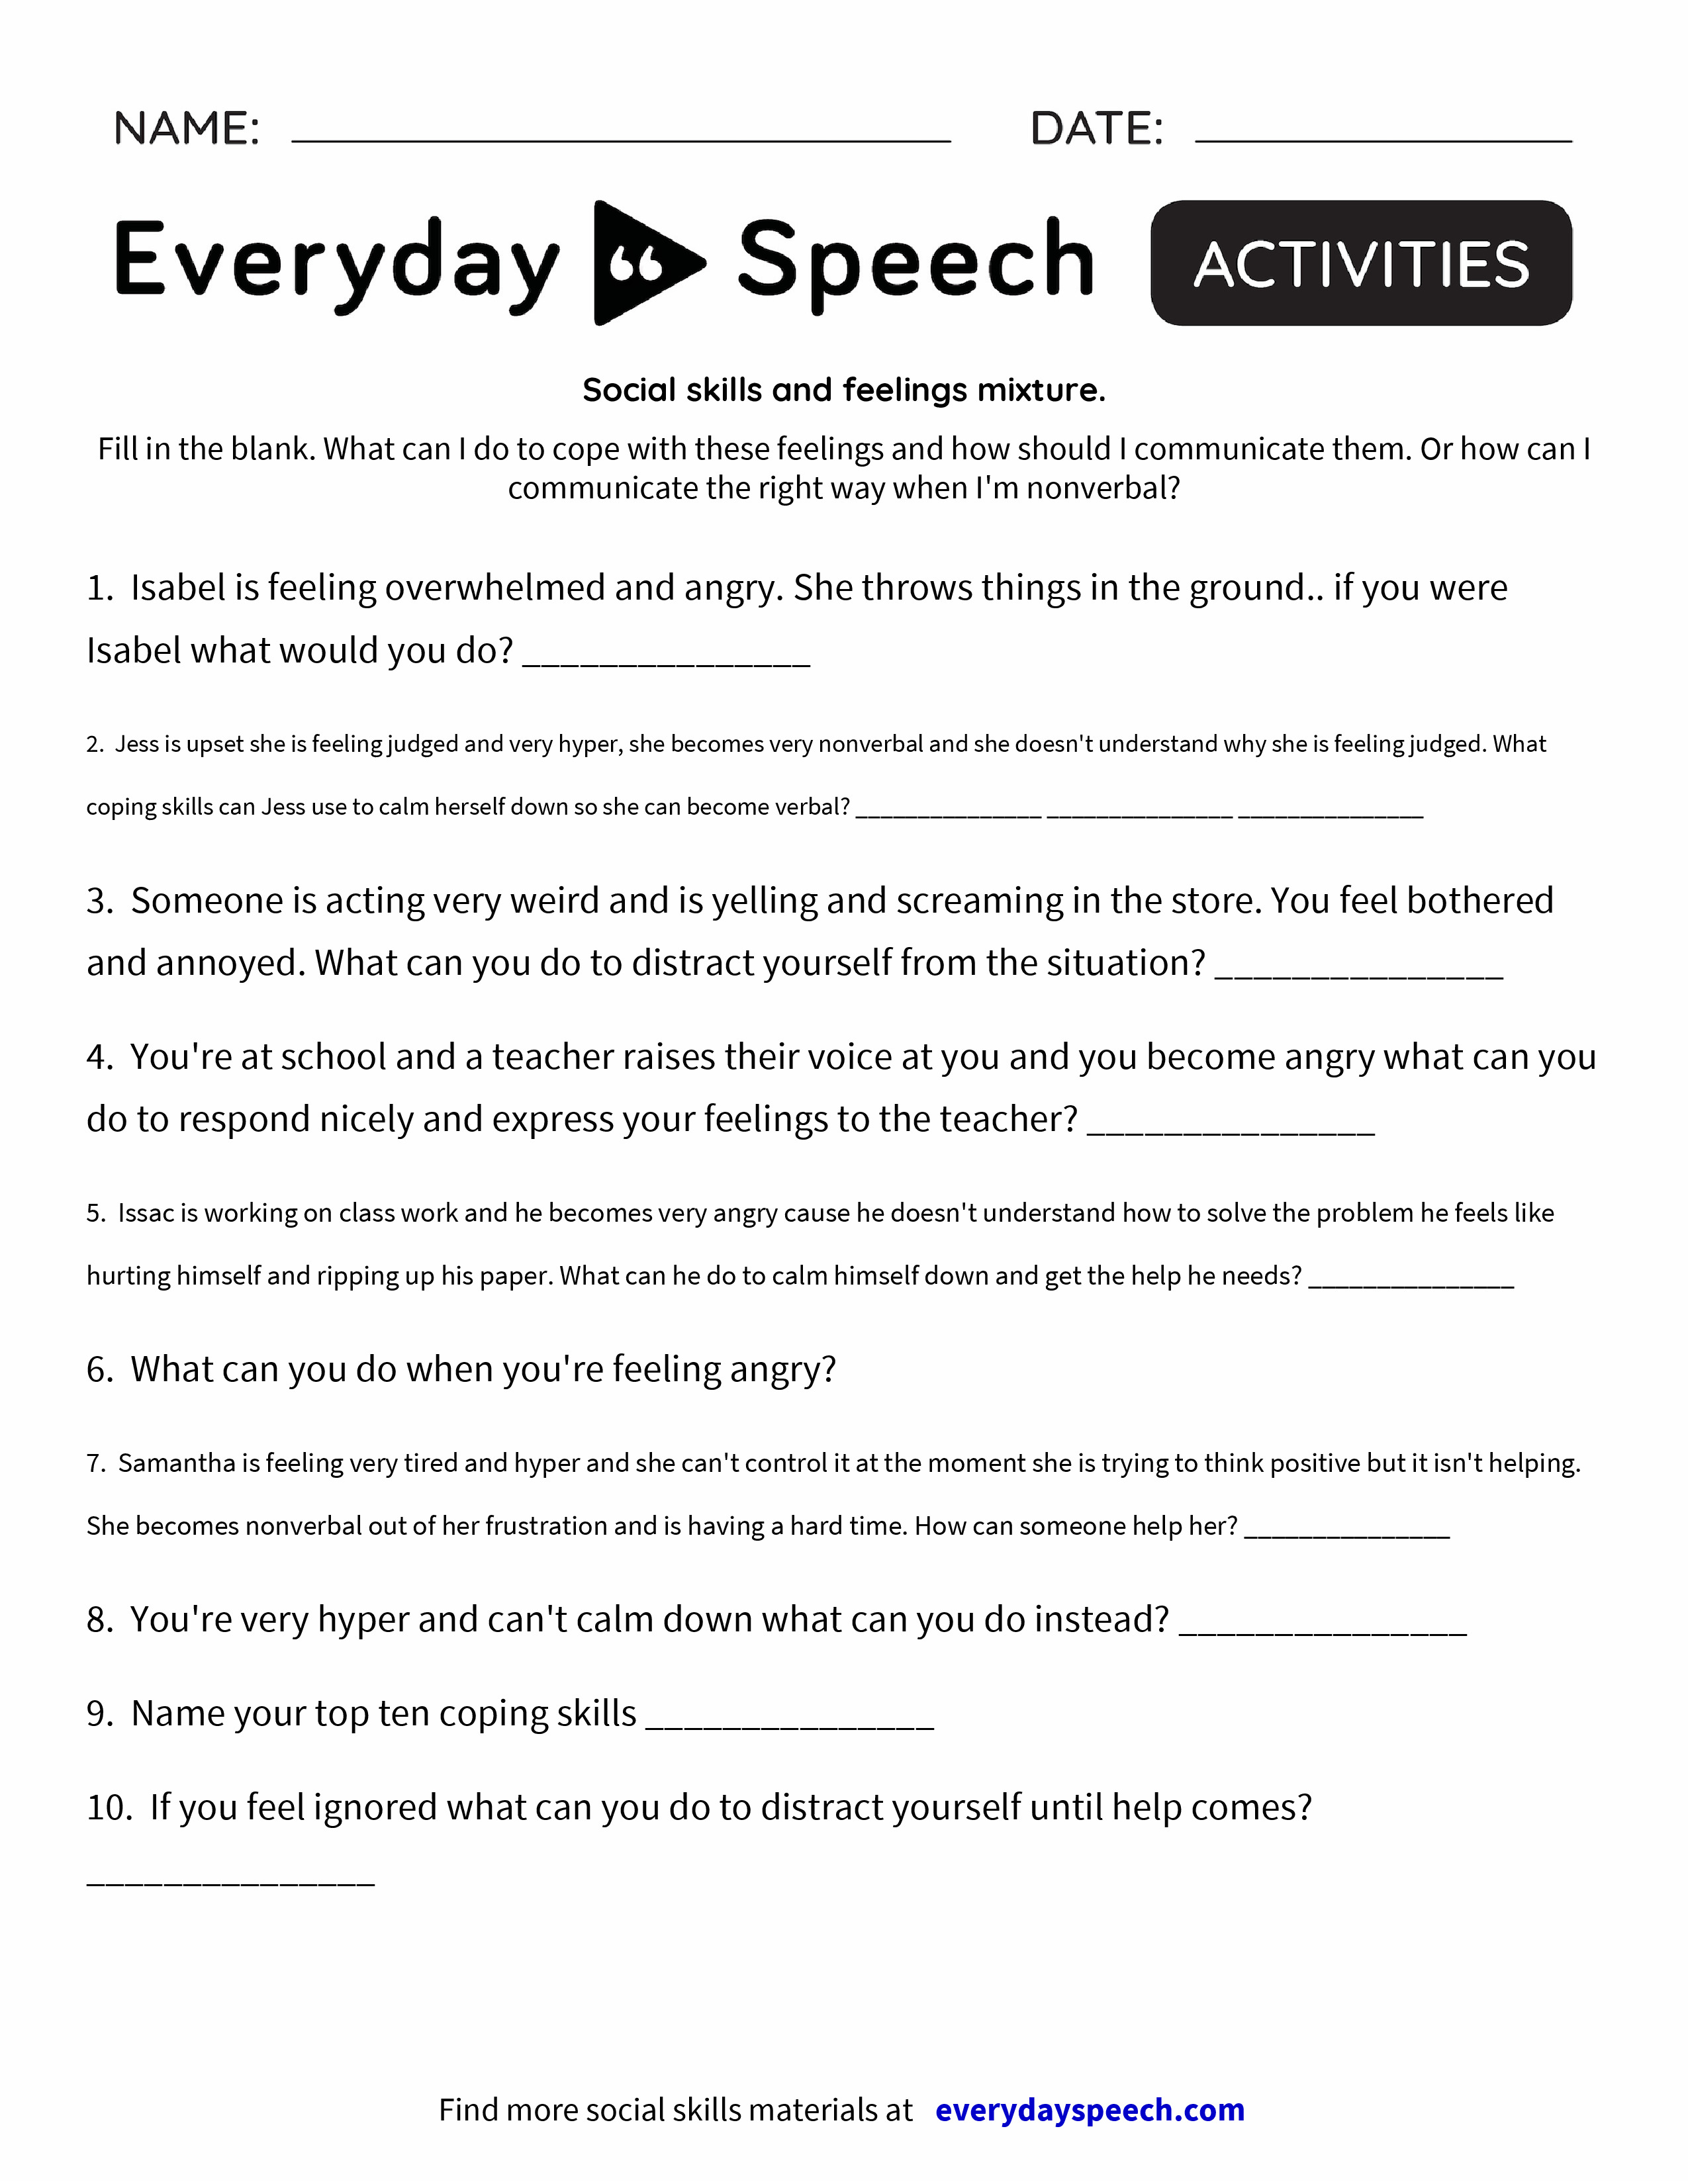 Social skills and feelings mixture Everyday Speech Everyday – Mixture Worksheet